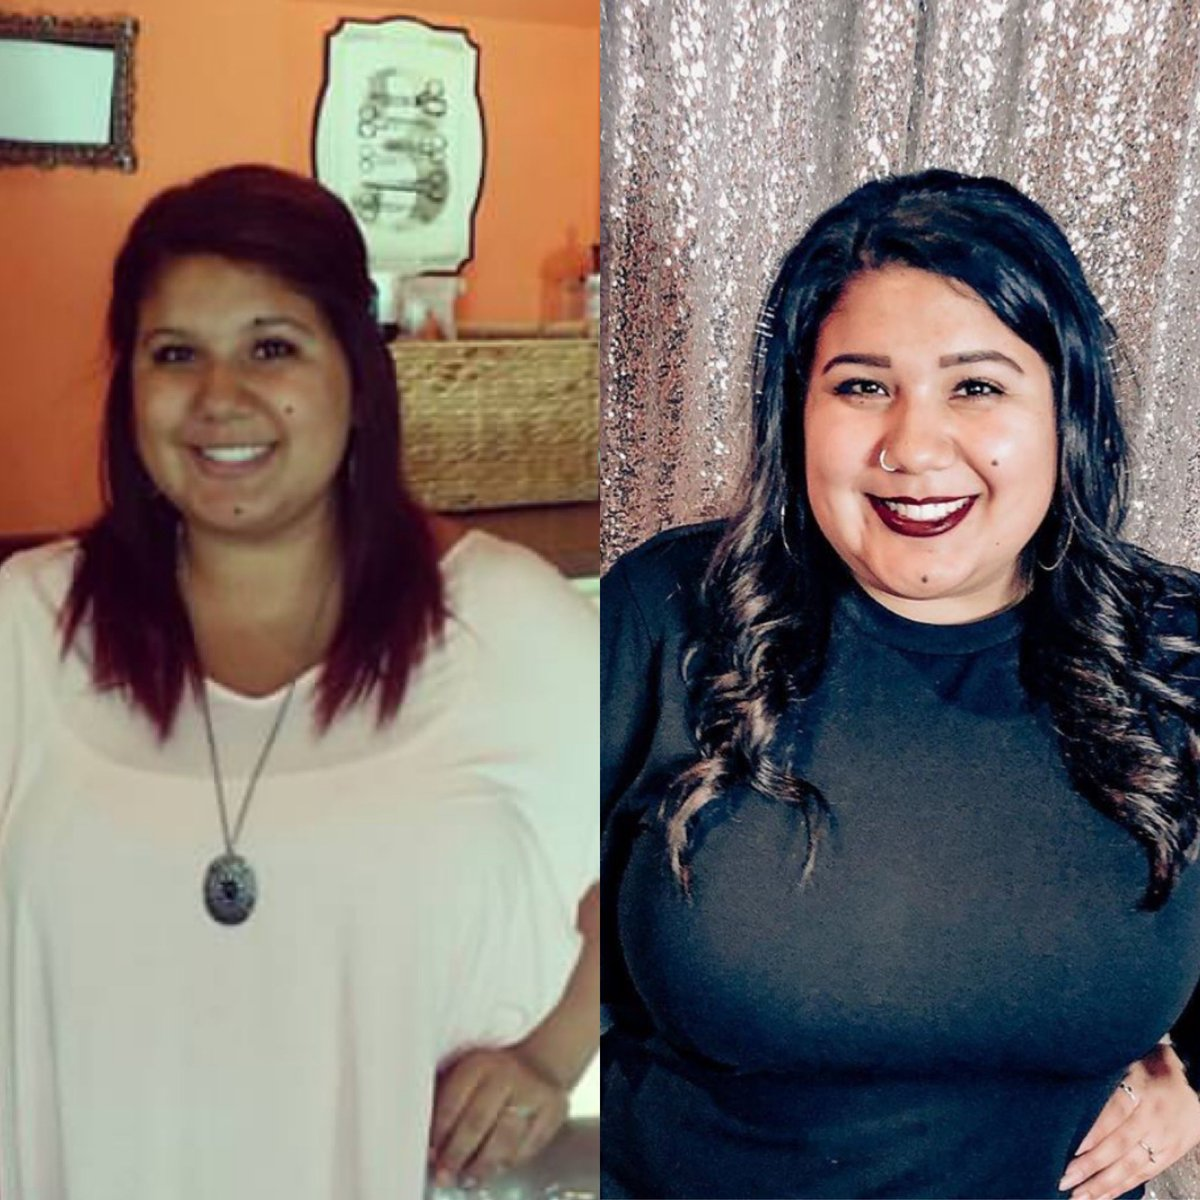 Our next #transformationtuesday goes to Hunter Caudillo! She has served as ED of Big Event, to being an ASB leader, OL, Panhellenic Exec Member, an Alpha Delta Pi, a student worker in the VSLC, & a Newman Civic Fellowship Scholar. She also has over 600 hours of community service!